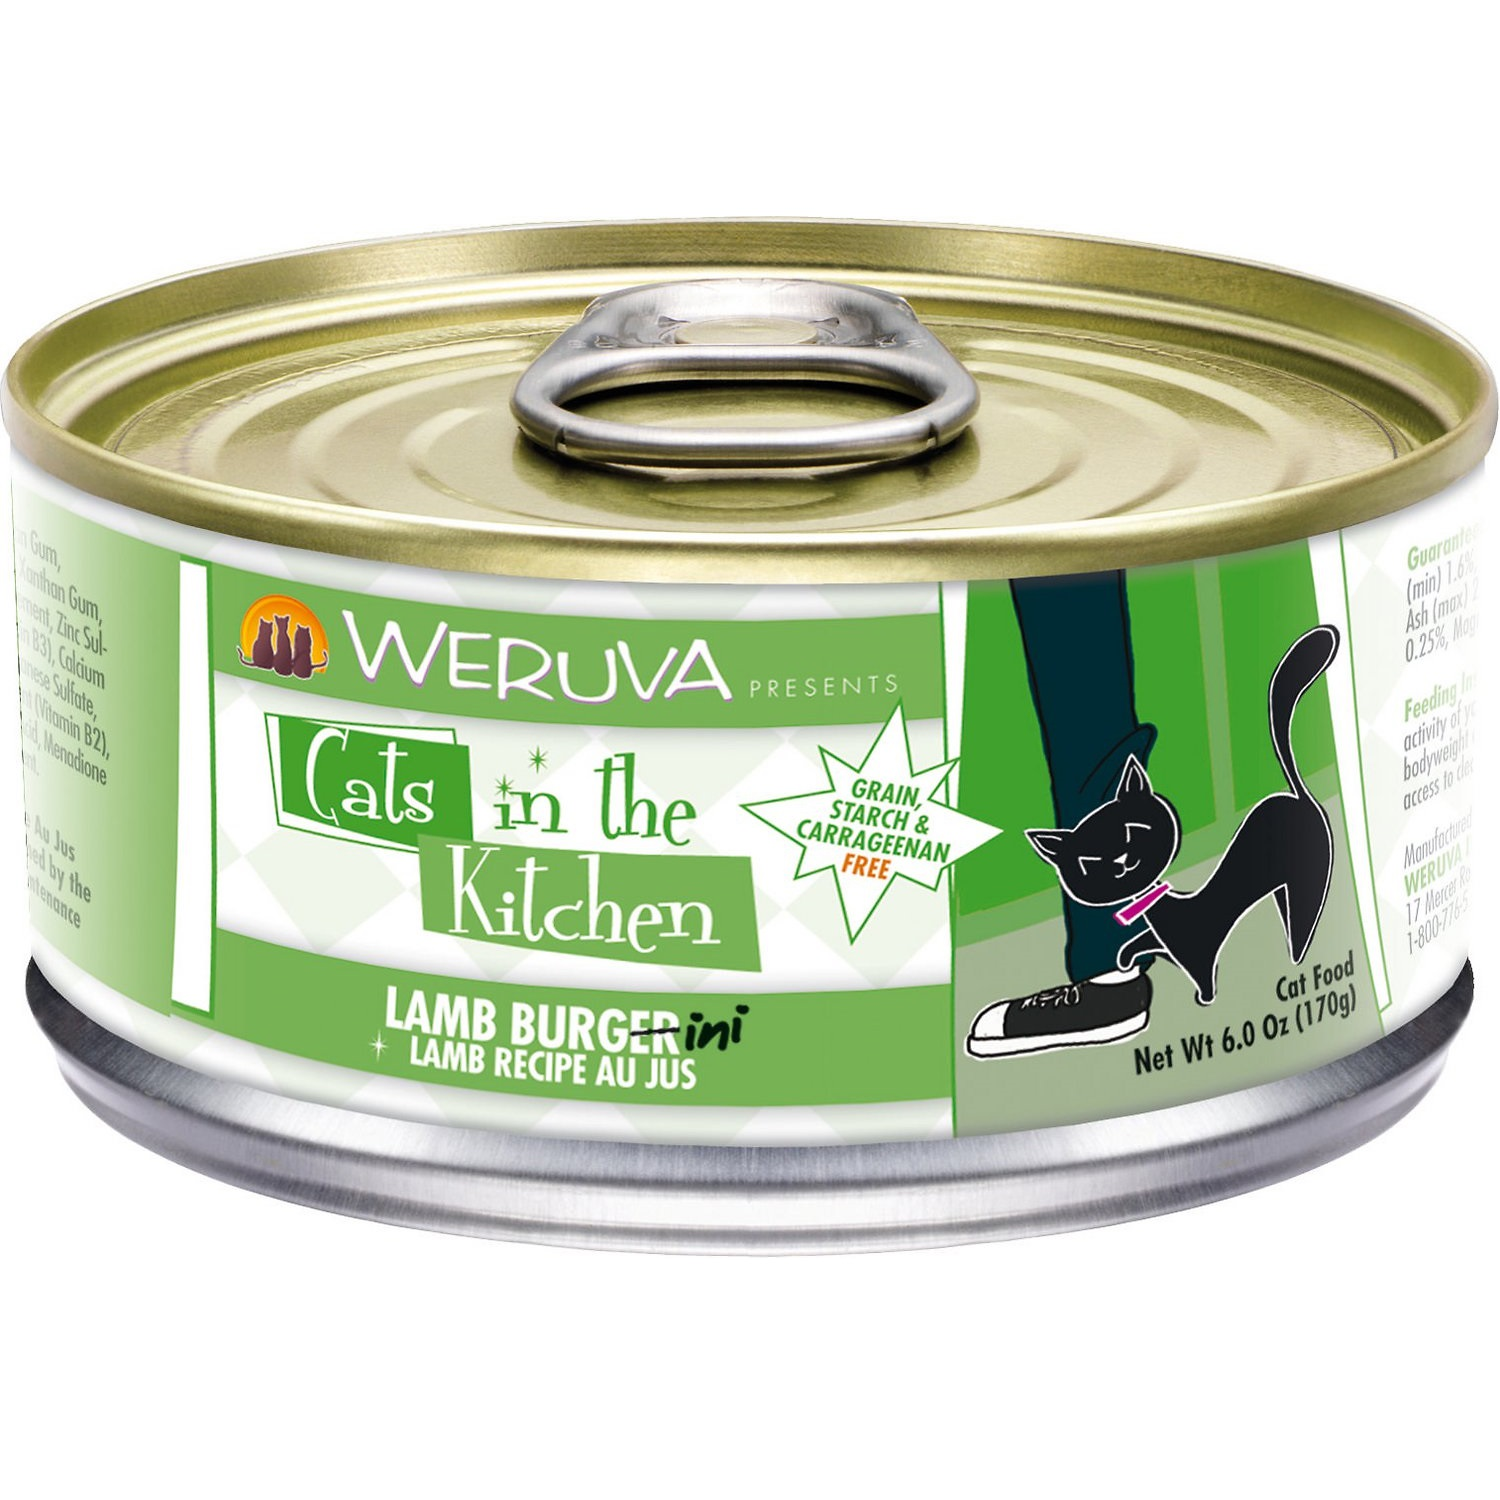 Weruva Cats in the Kitchen Lamb Burgini, Lamb Au Jus Grain-Free Canned Cat Food 6z, 24